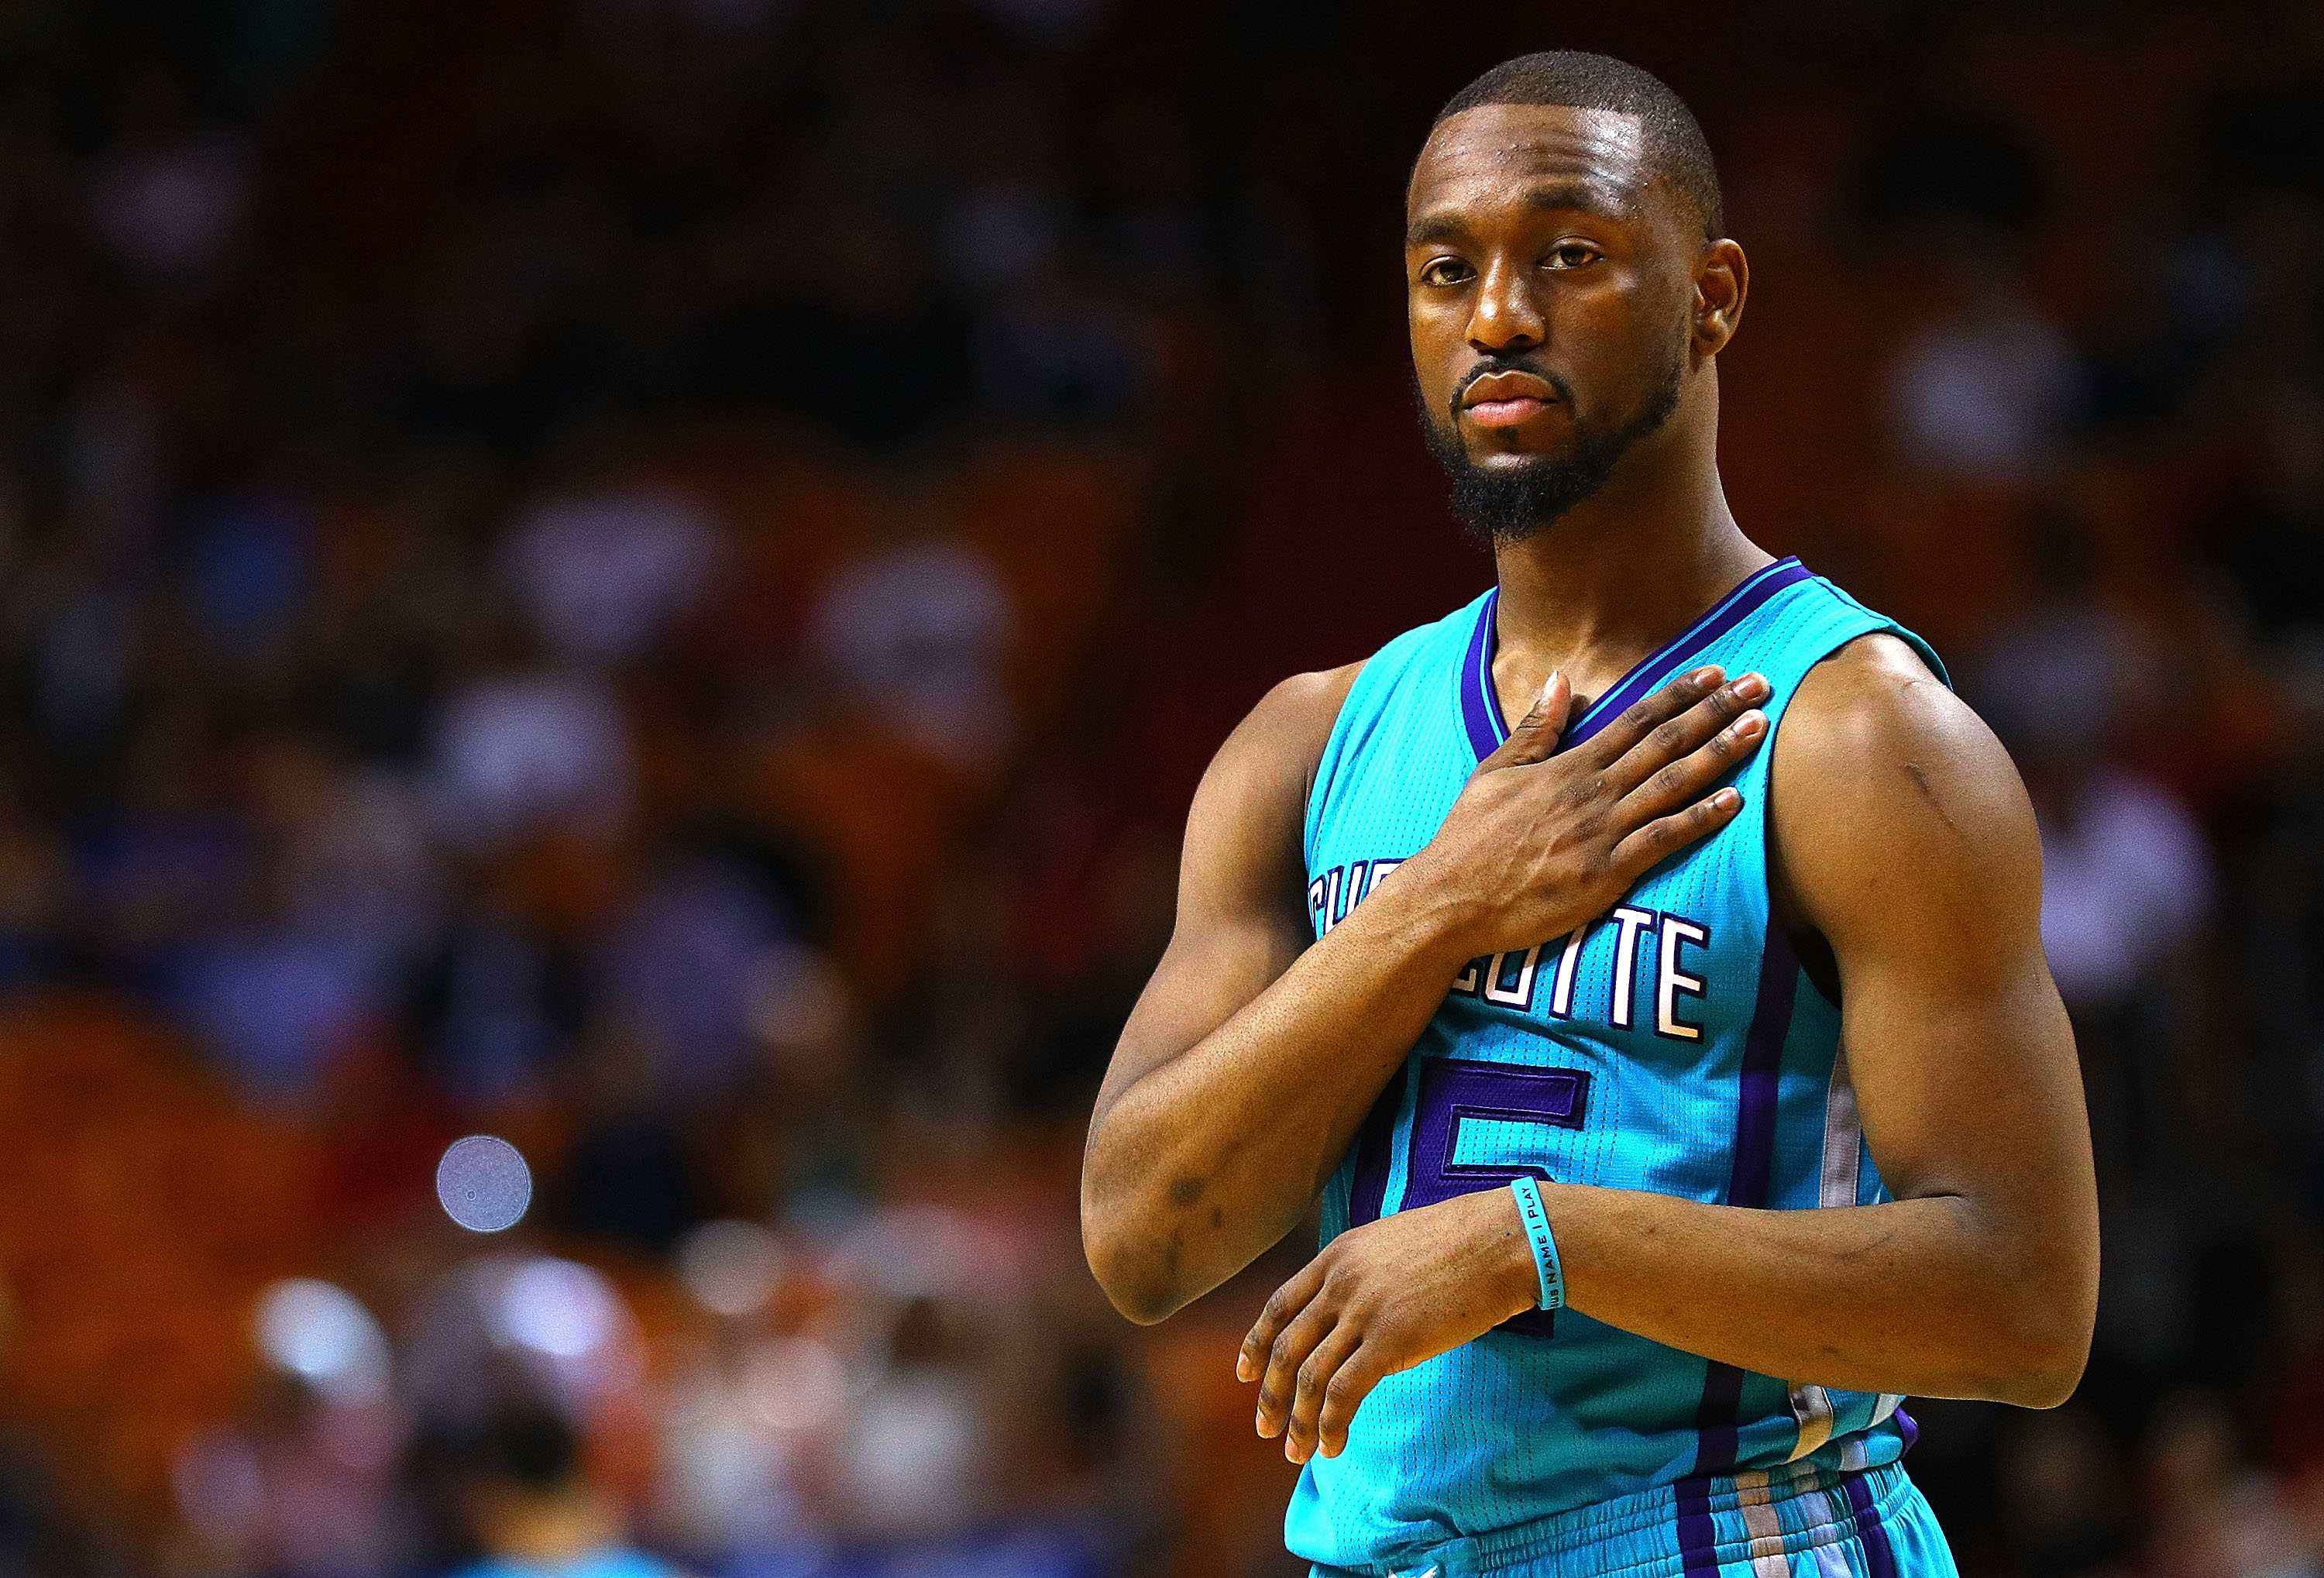 Hornets' Kemba Walker procedure on left knee a success | WCNC.com